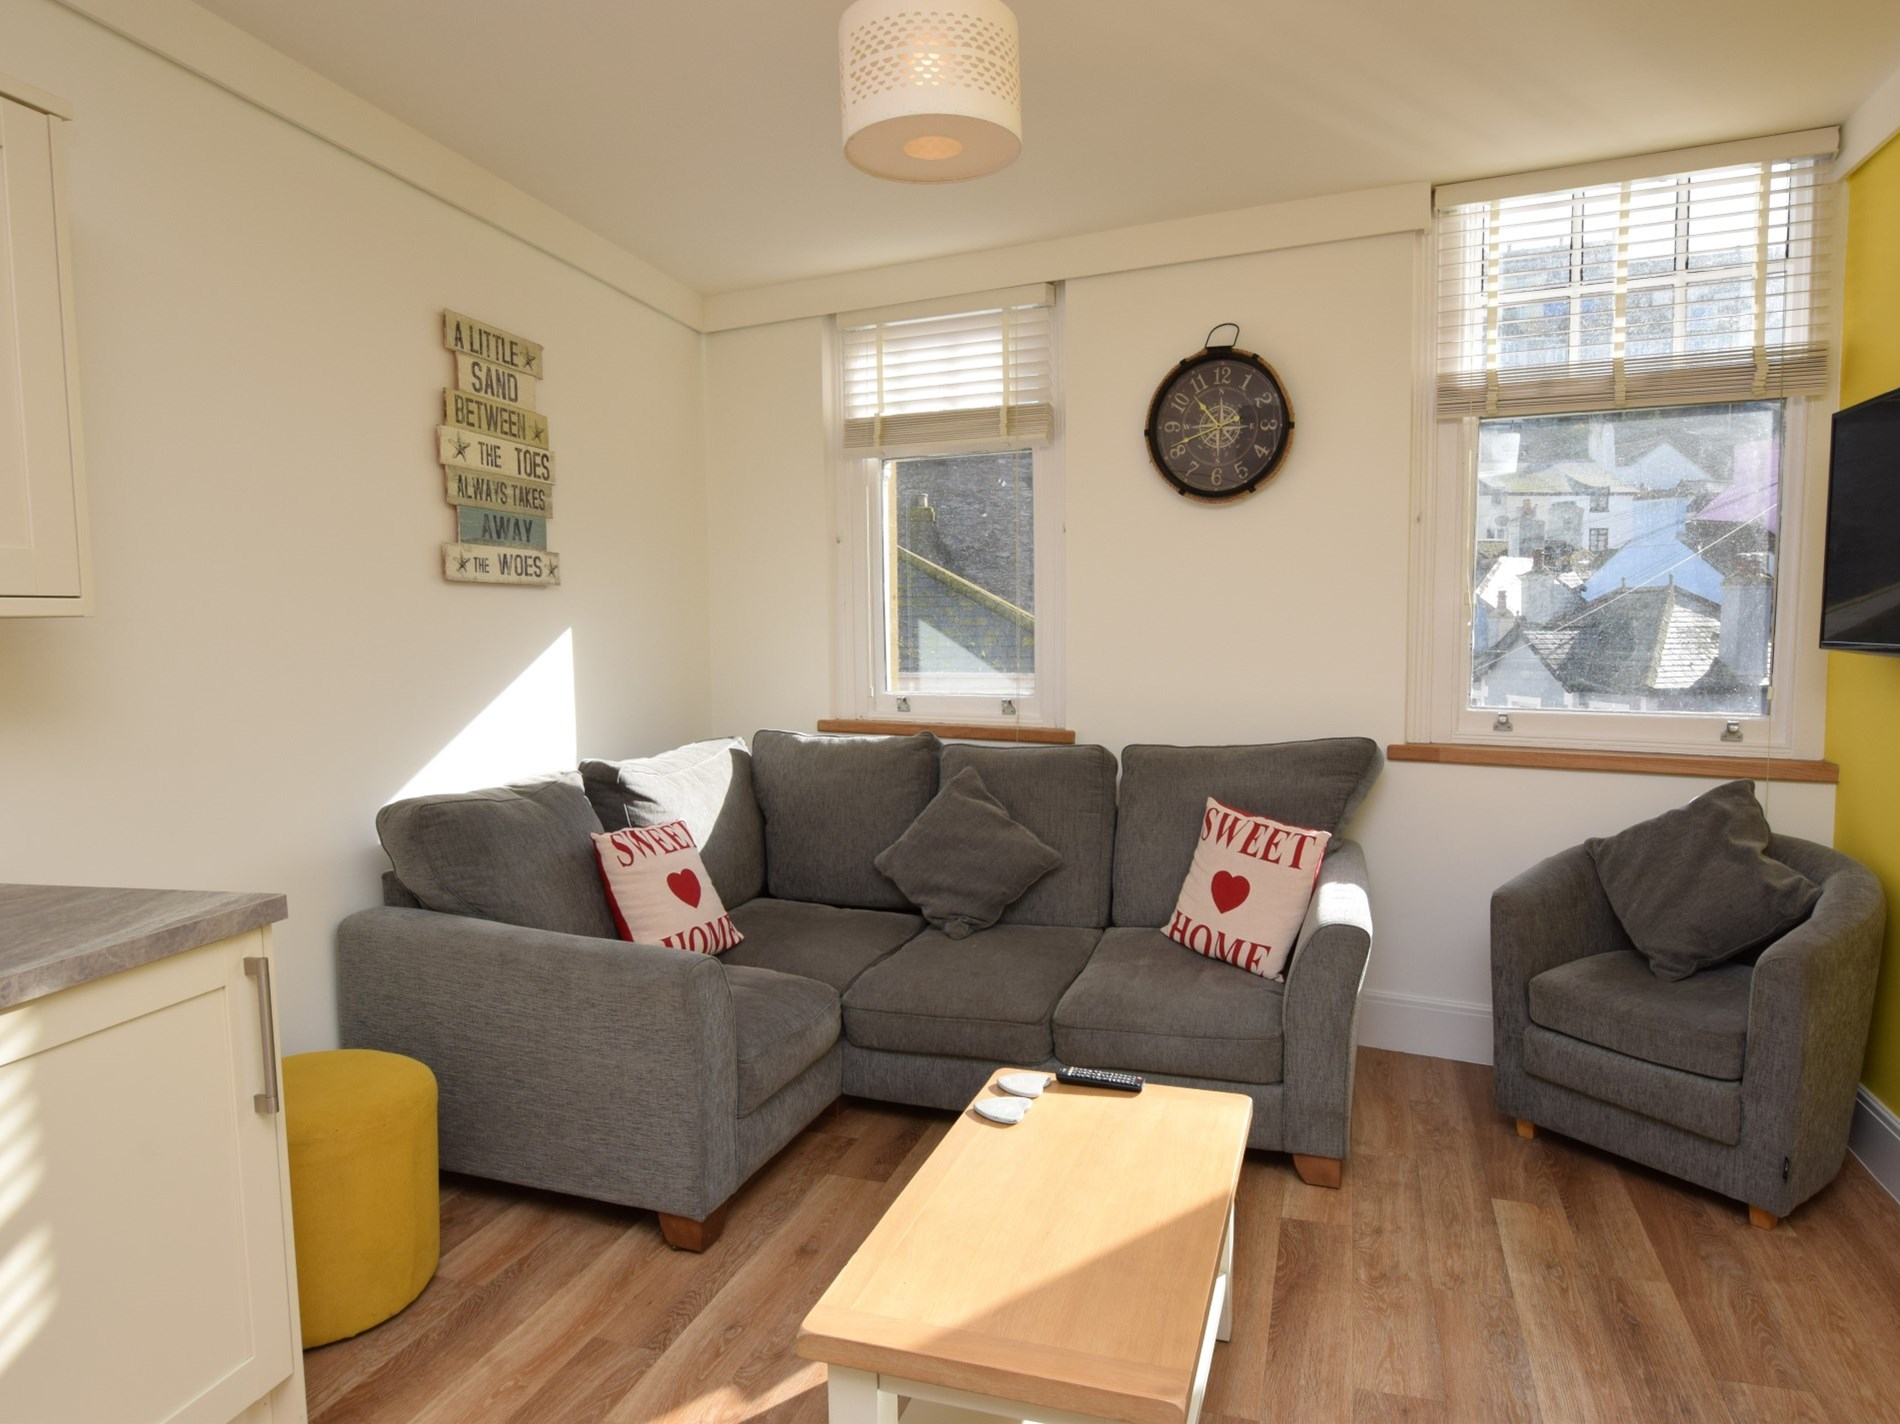 2 Bedroom Cottage in Brixham, Devon